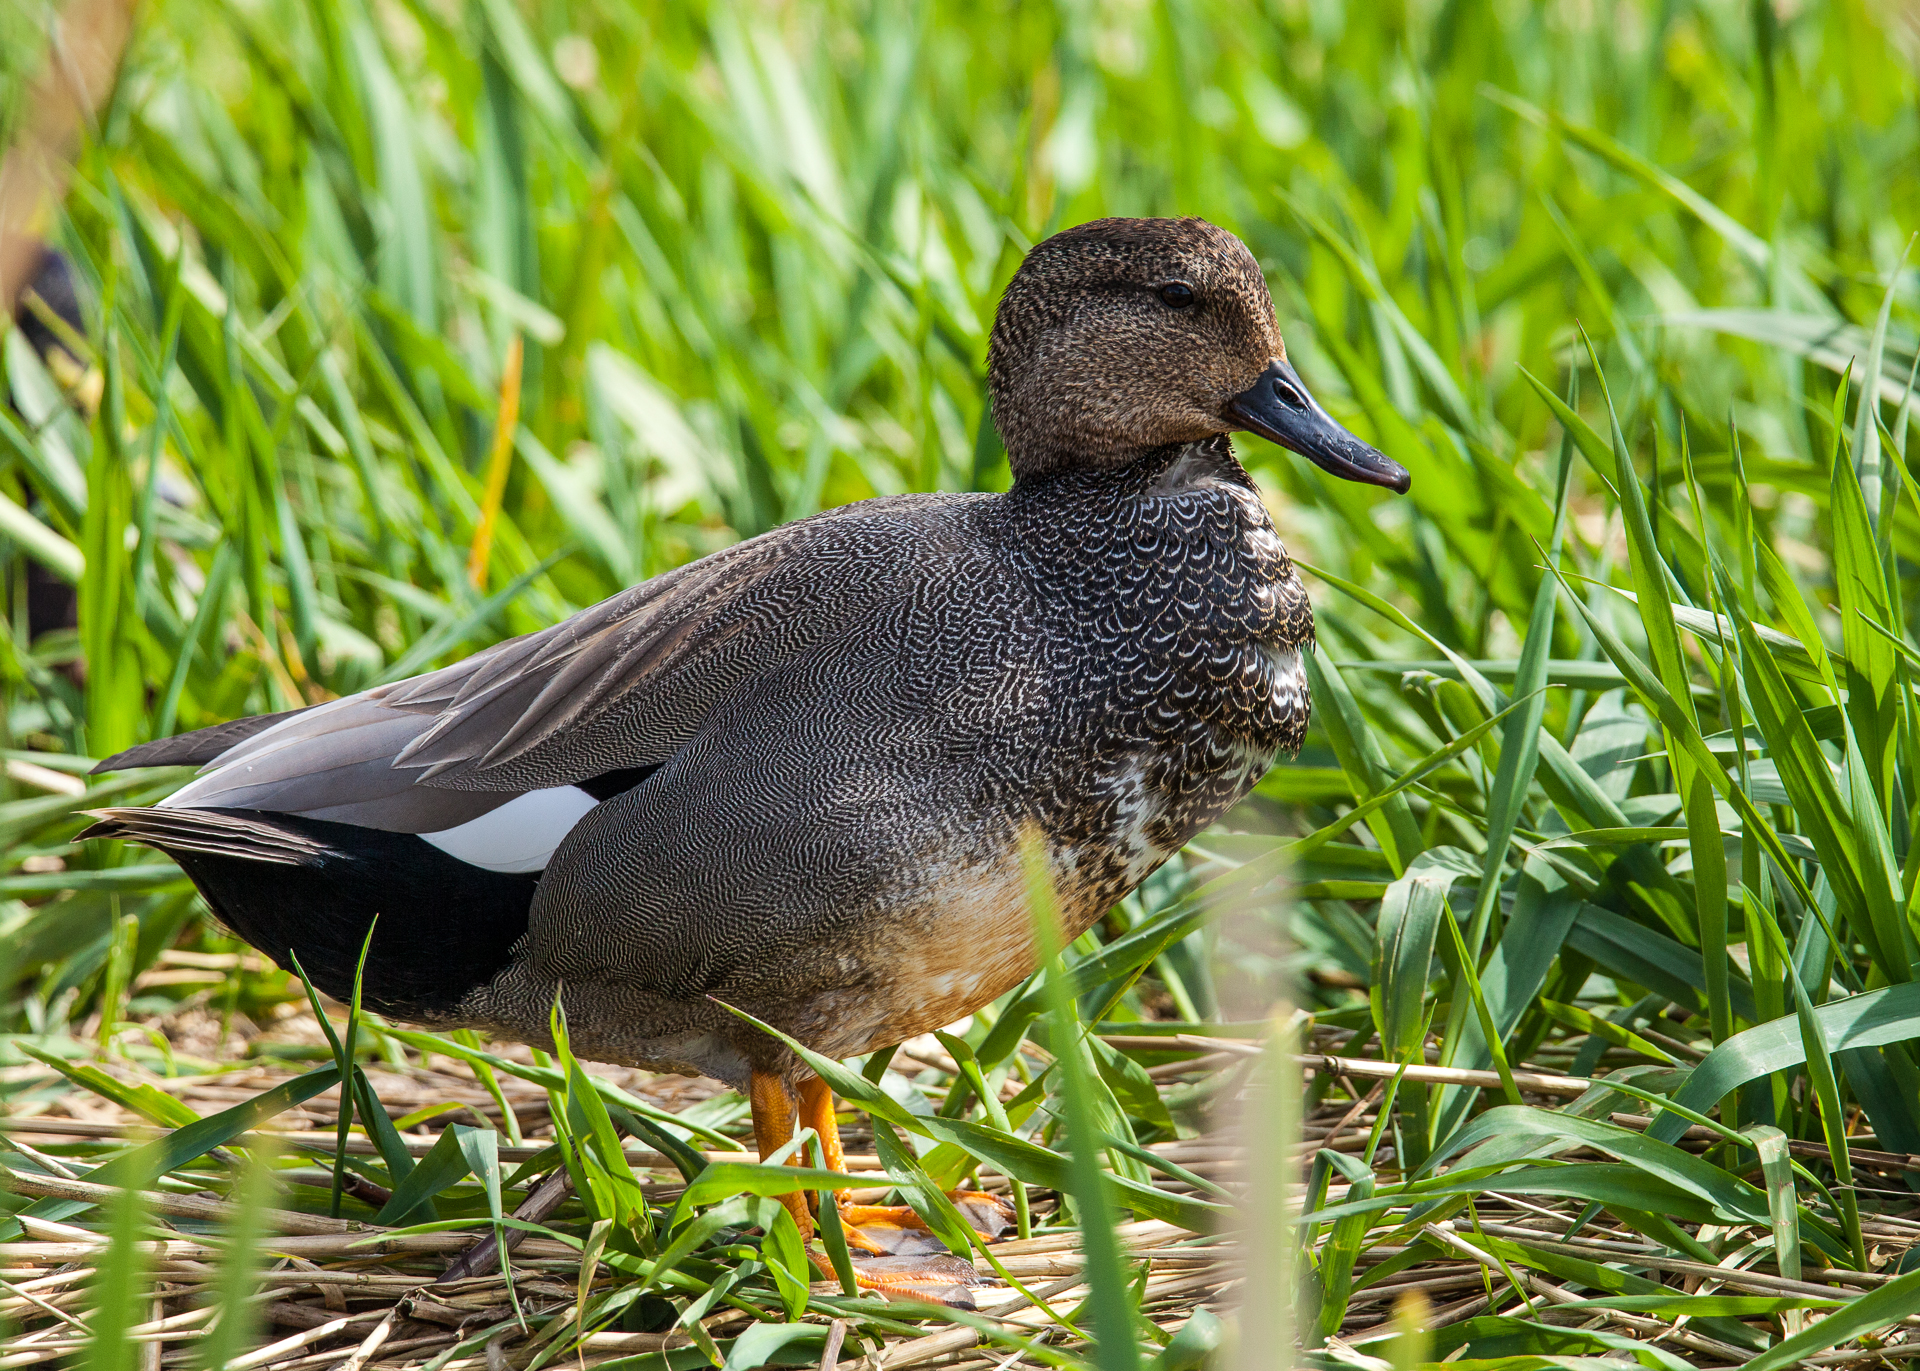 This was a new duck species that I have not seen before, and could not identify.